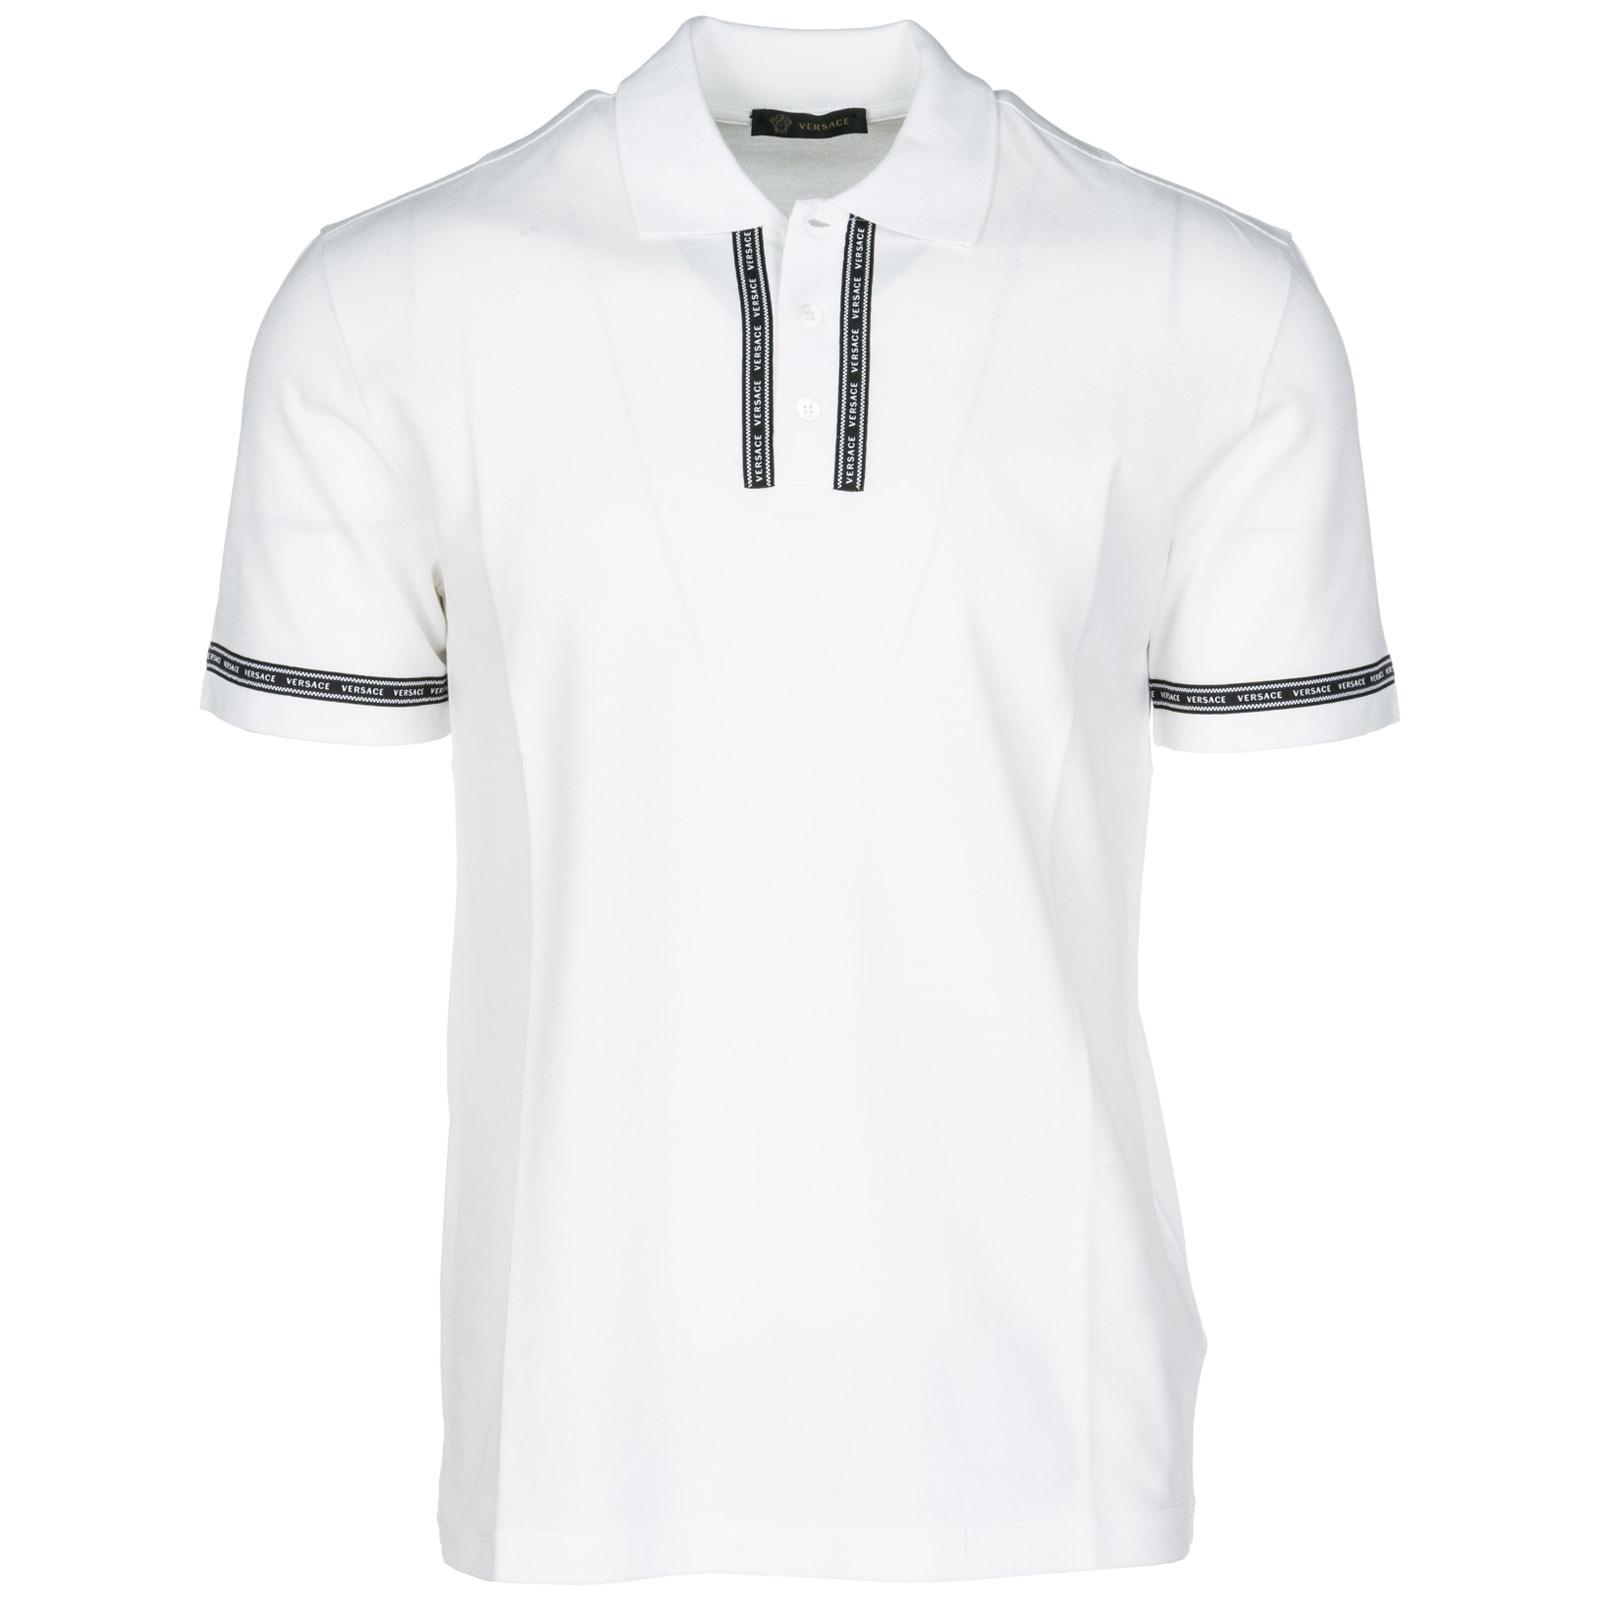 7ed3aa32 Versace Short Sleeve T-shirt Polo Collar in White for Men - Lyst